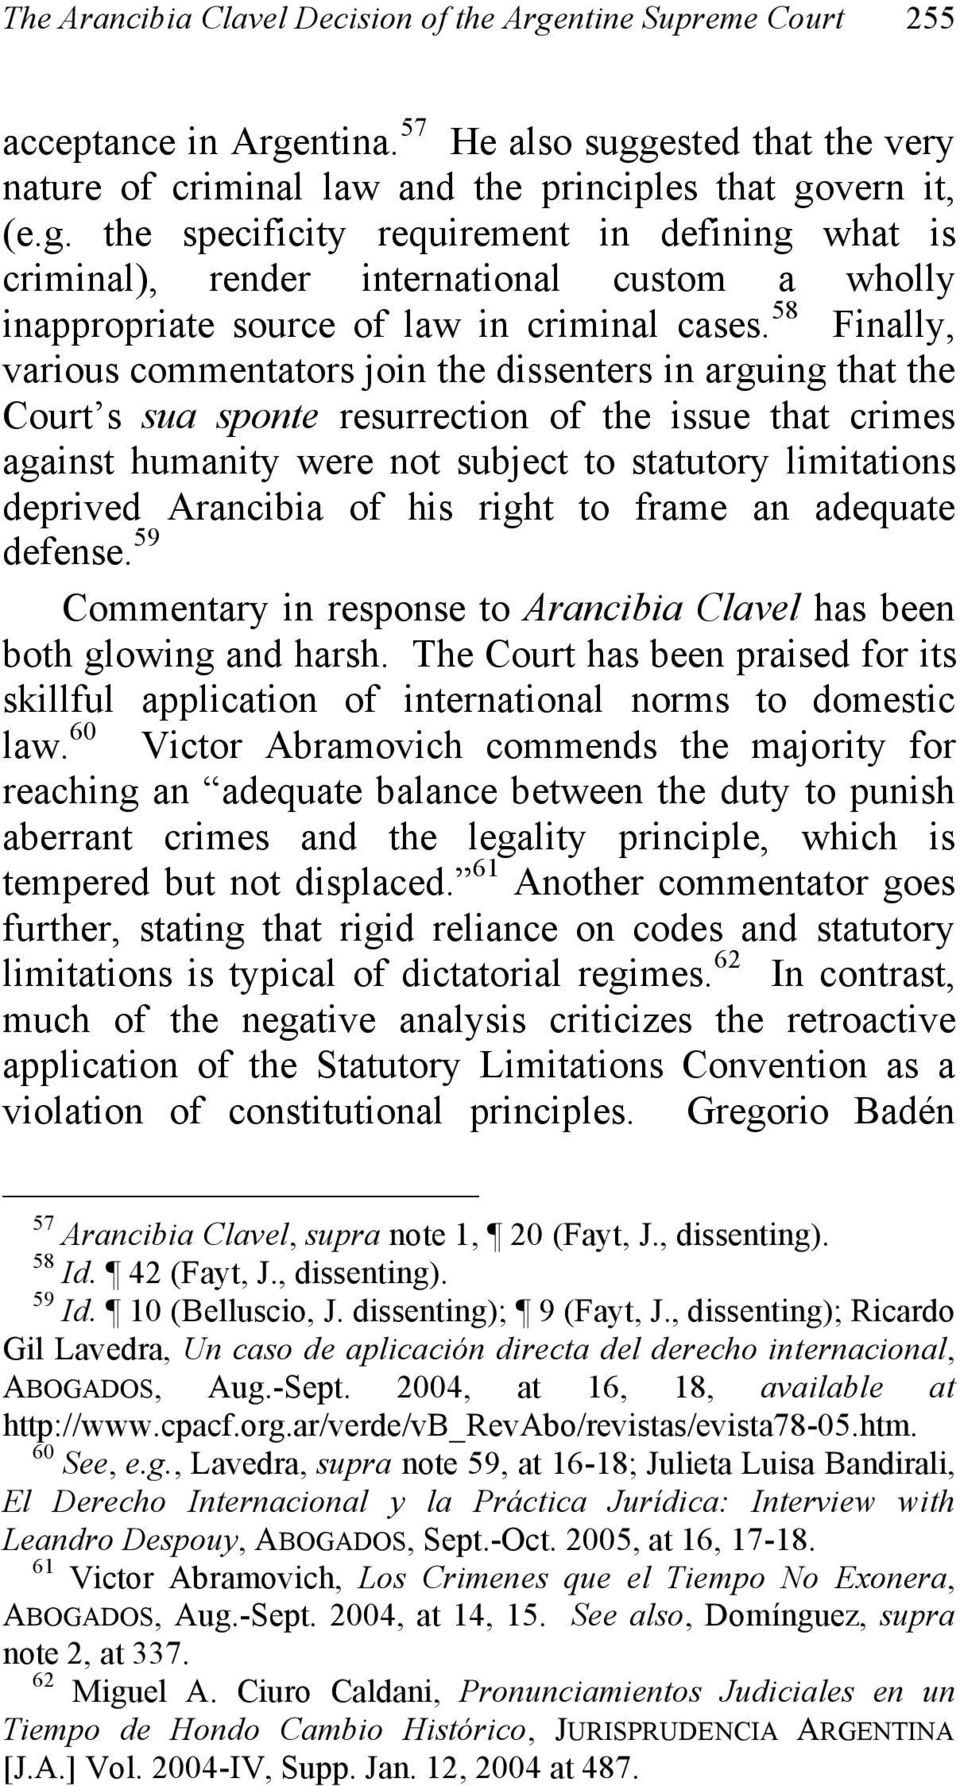 Arancibia of his right to frame an adequate defense. 59 Commentary in response to Arancibia Clavel has been both glowing and harsh.